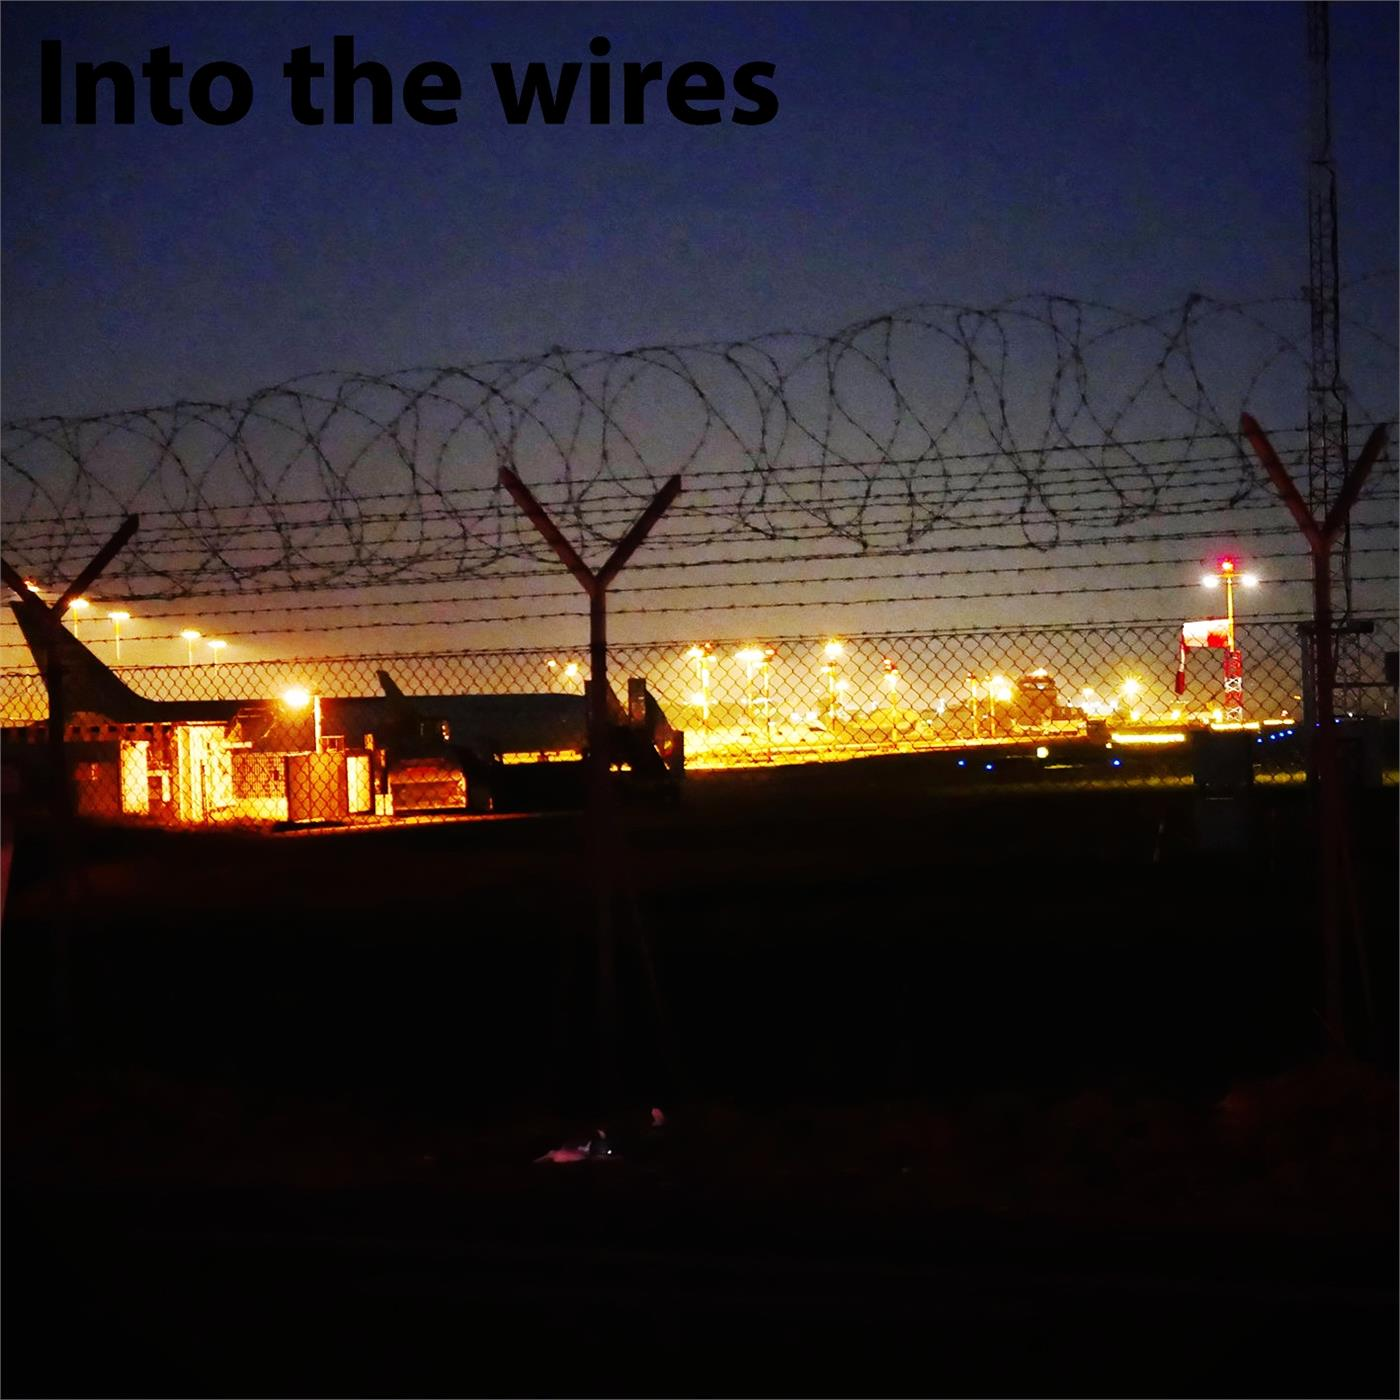 Into the wire